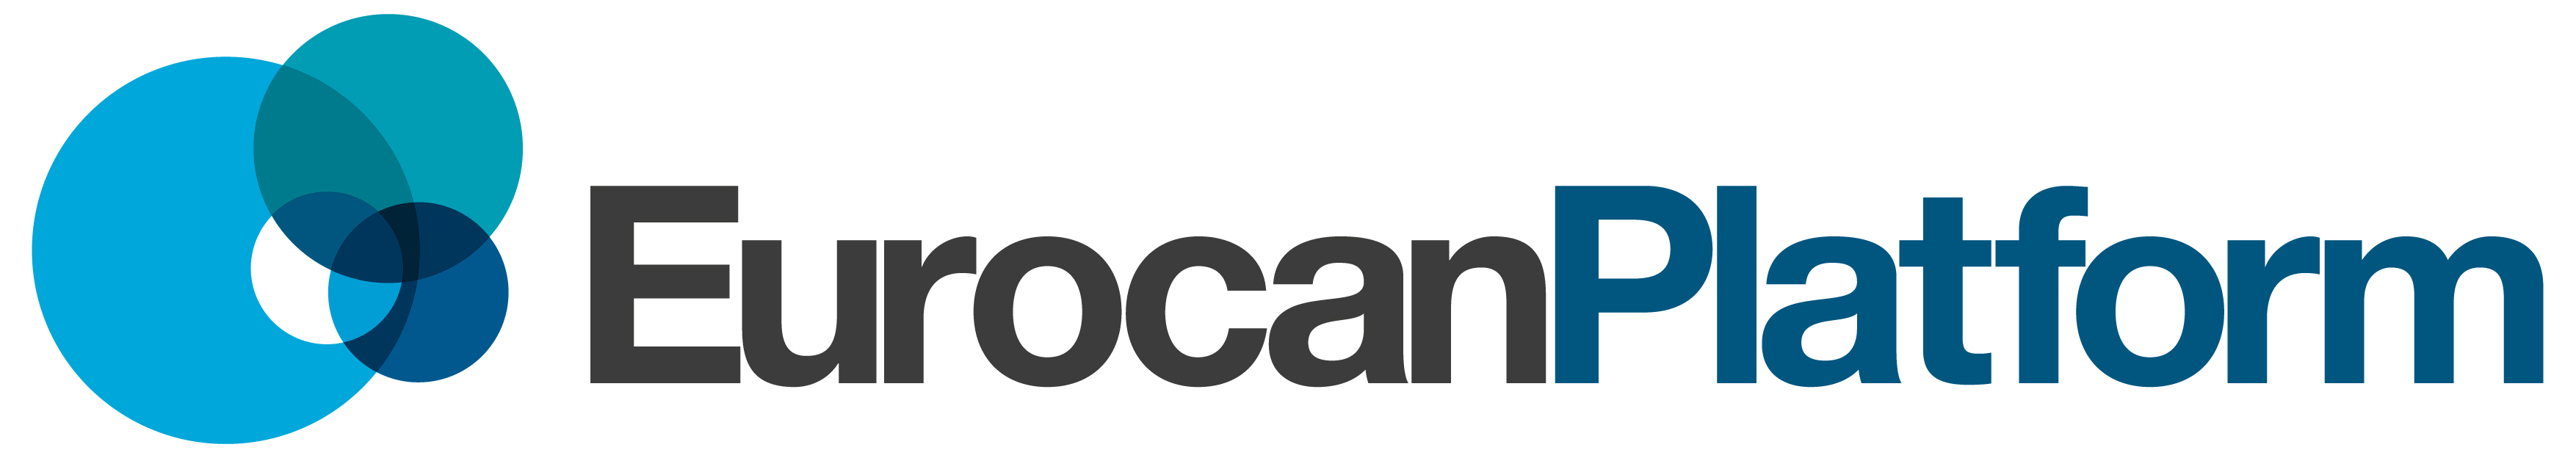 Image result for eurocanplatform logo